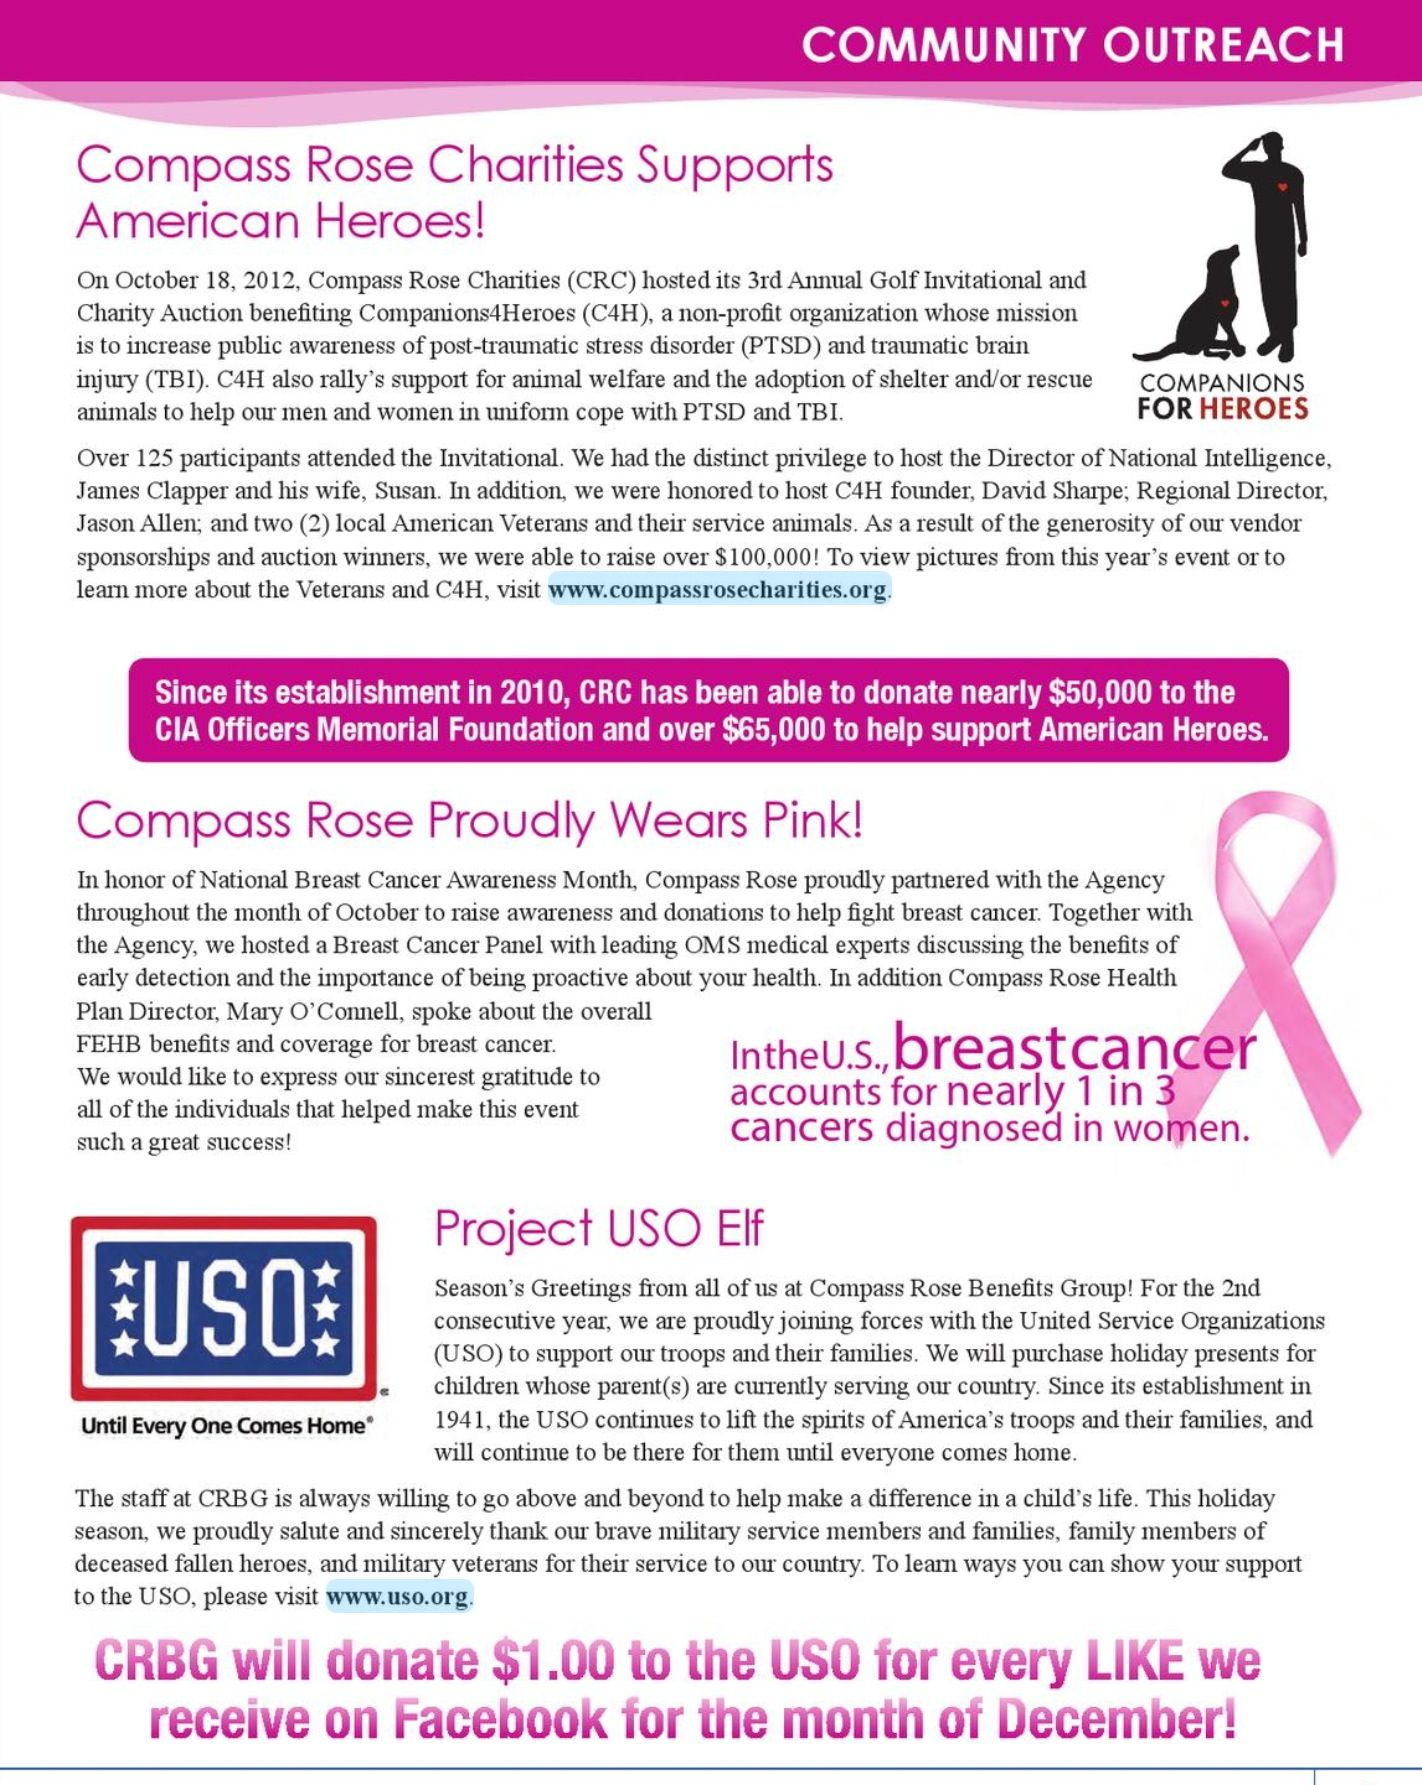 Crbg outreach events throughout the years uso